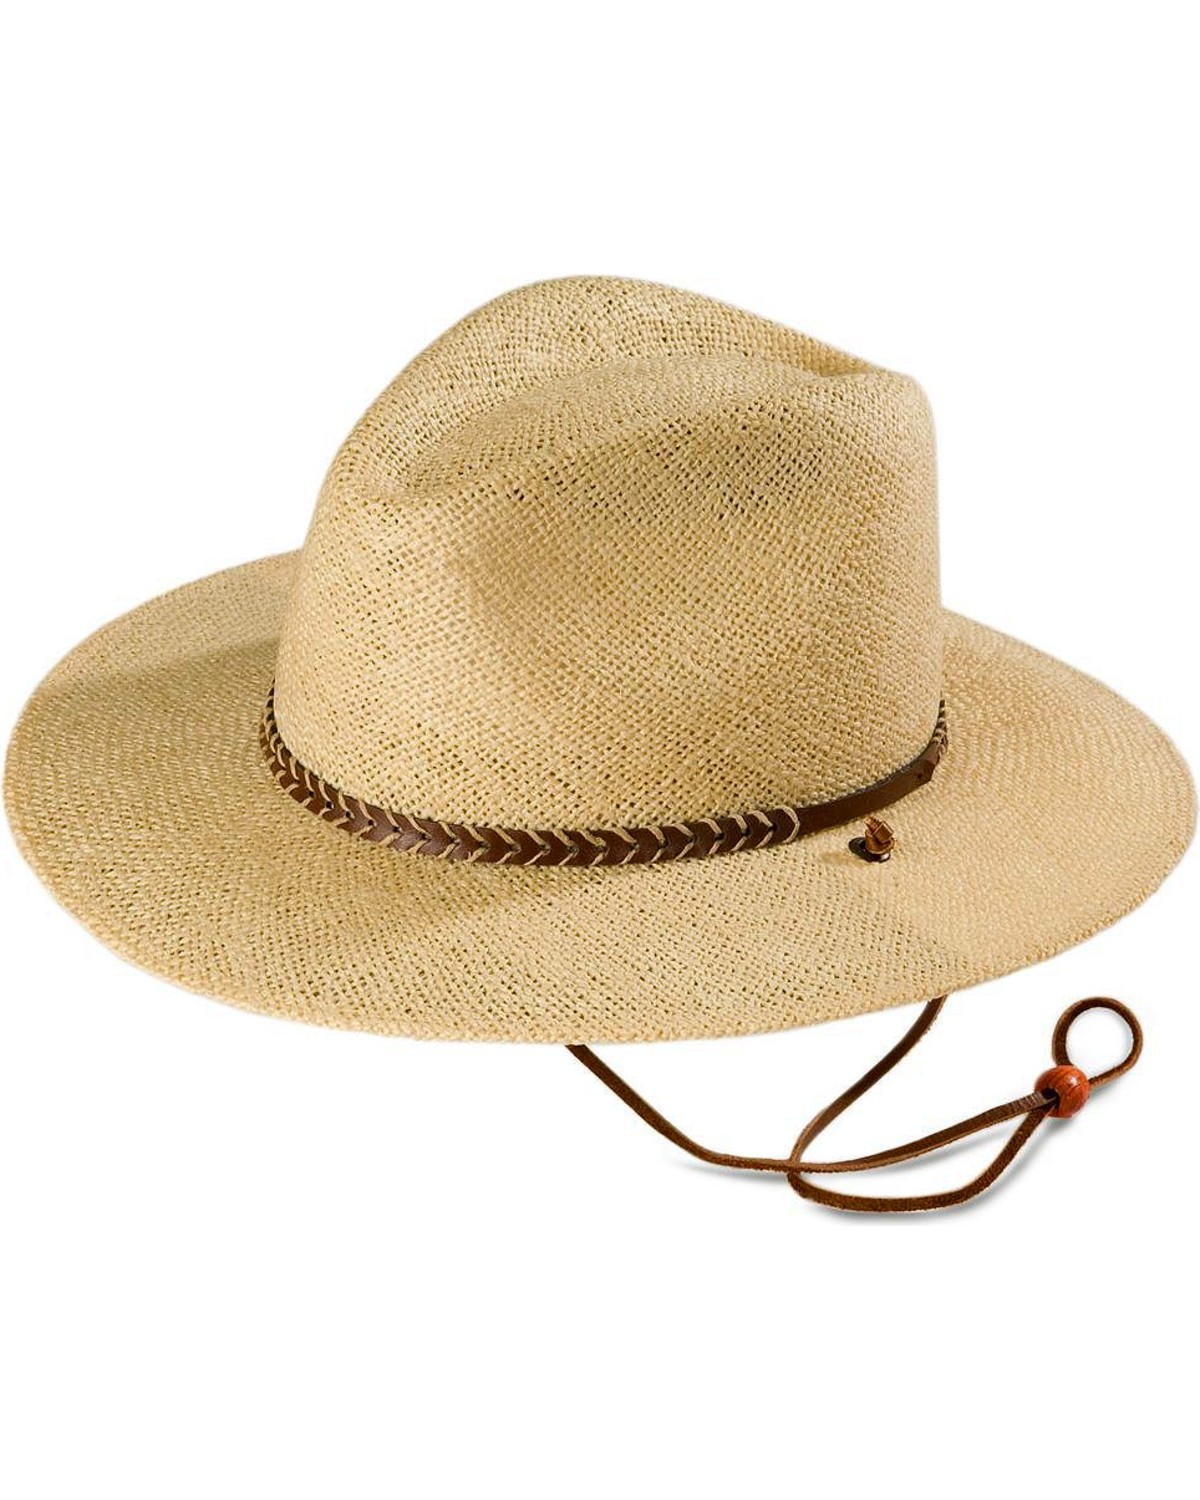 straw hats stetson lakeland uv protection straw hat, natural, hi-res ttjiirz